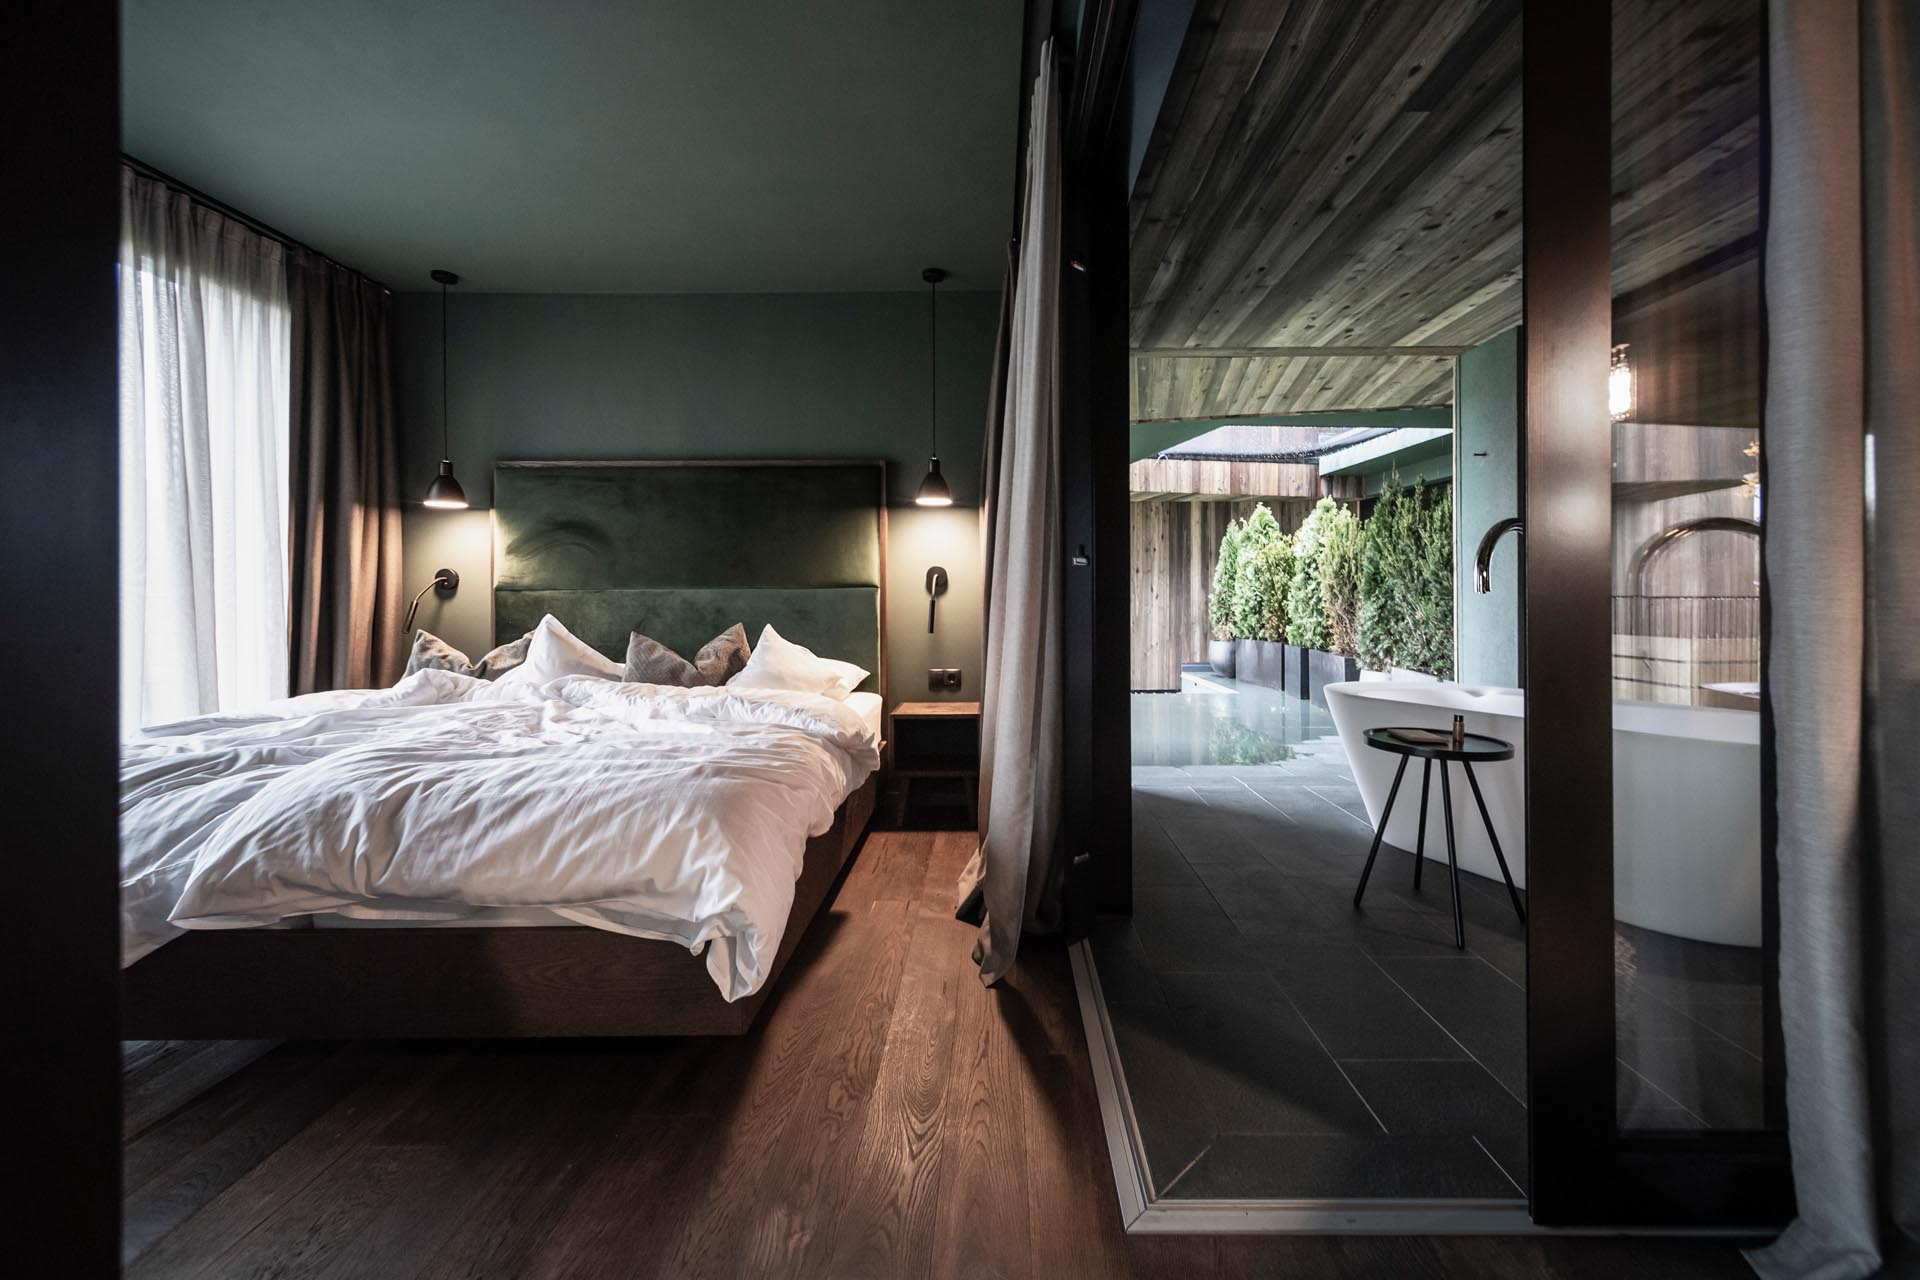 A modern hotel room a glass walled bedroom and outdoor bathtubs.